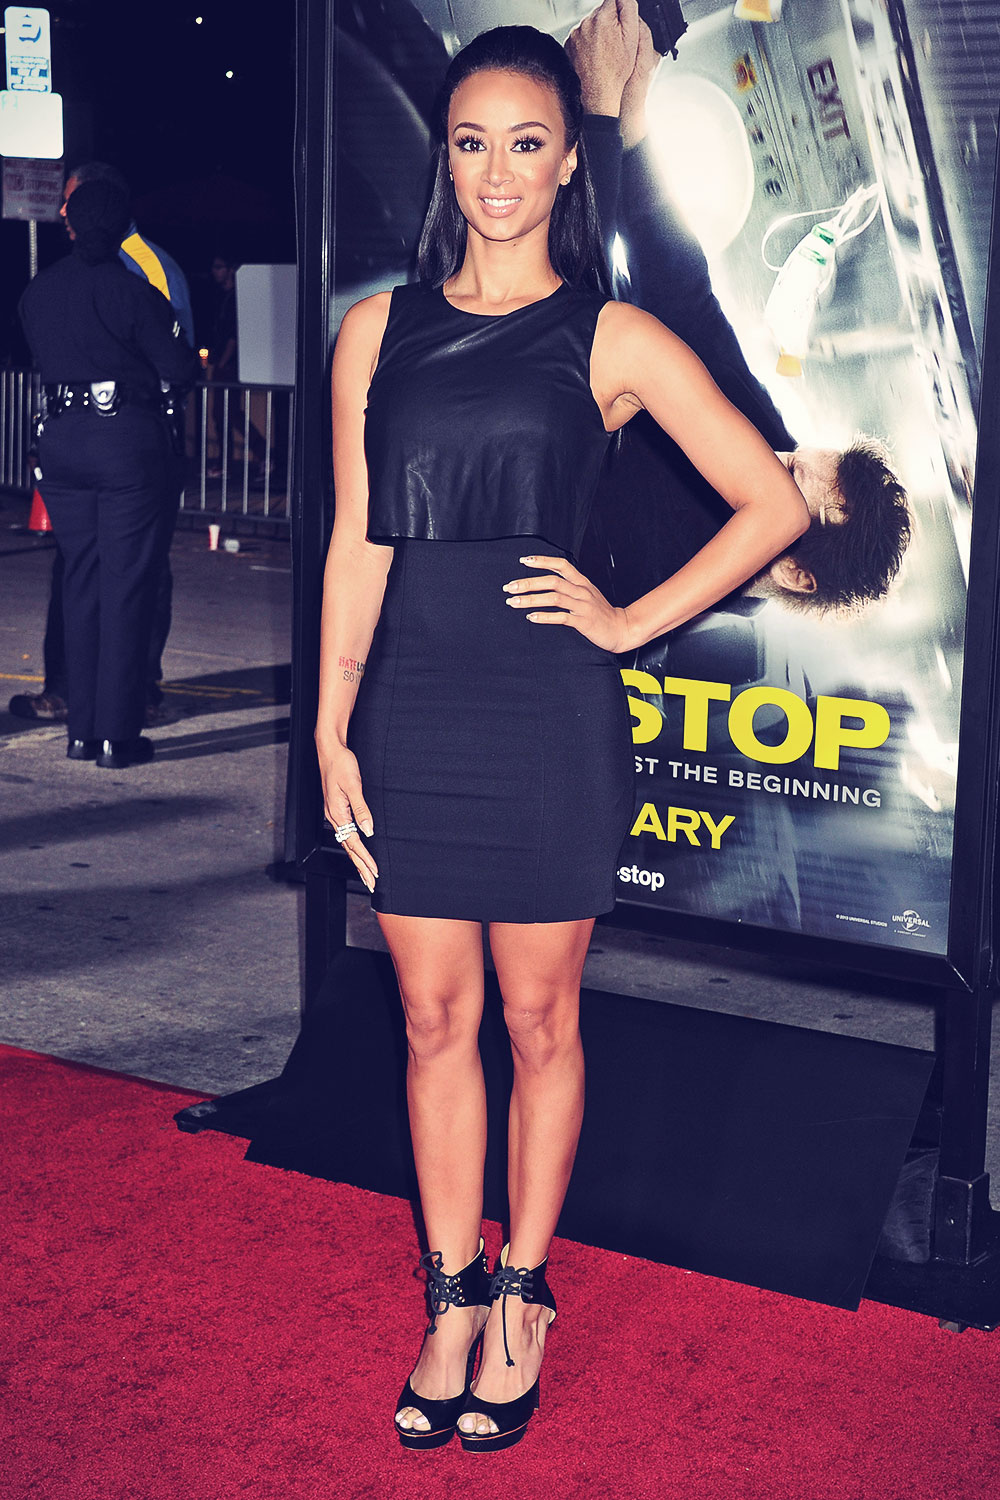 Draya Michele at the Non-Stop Premiere